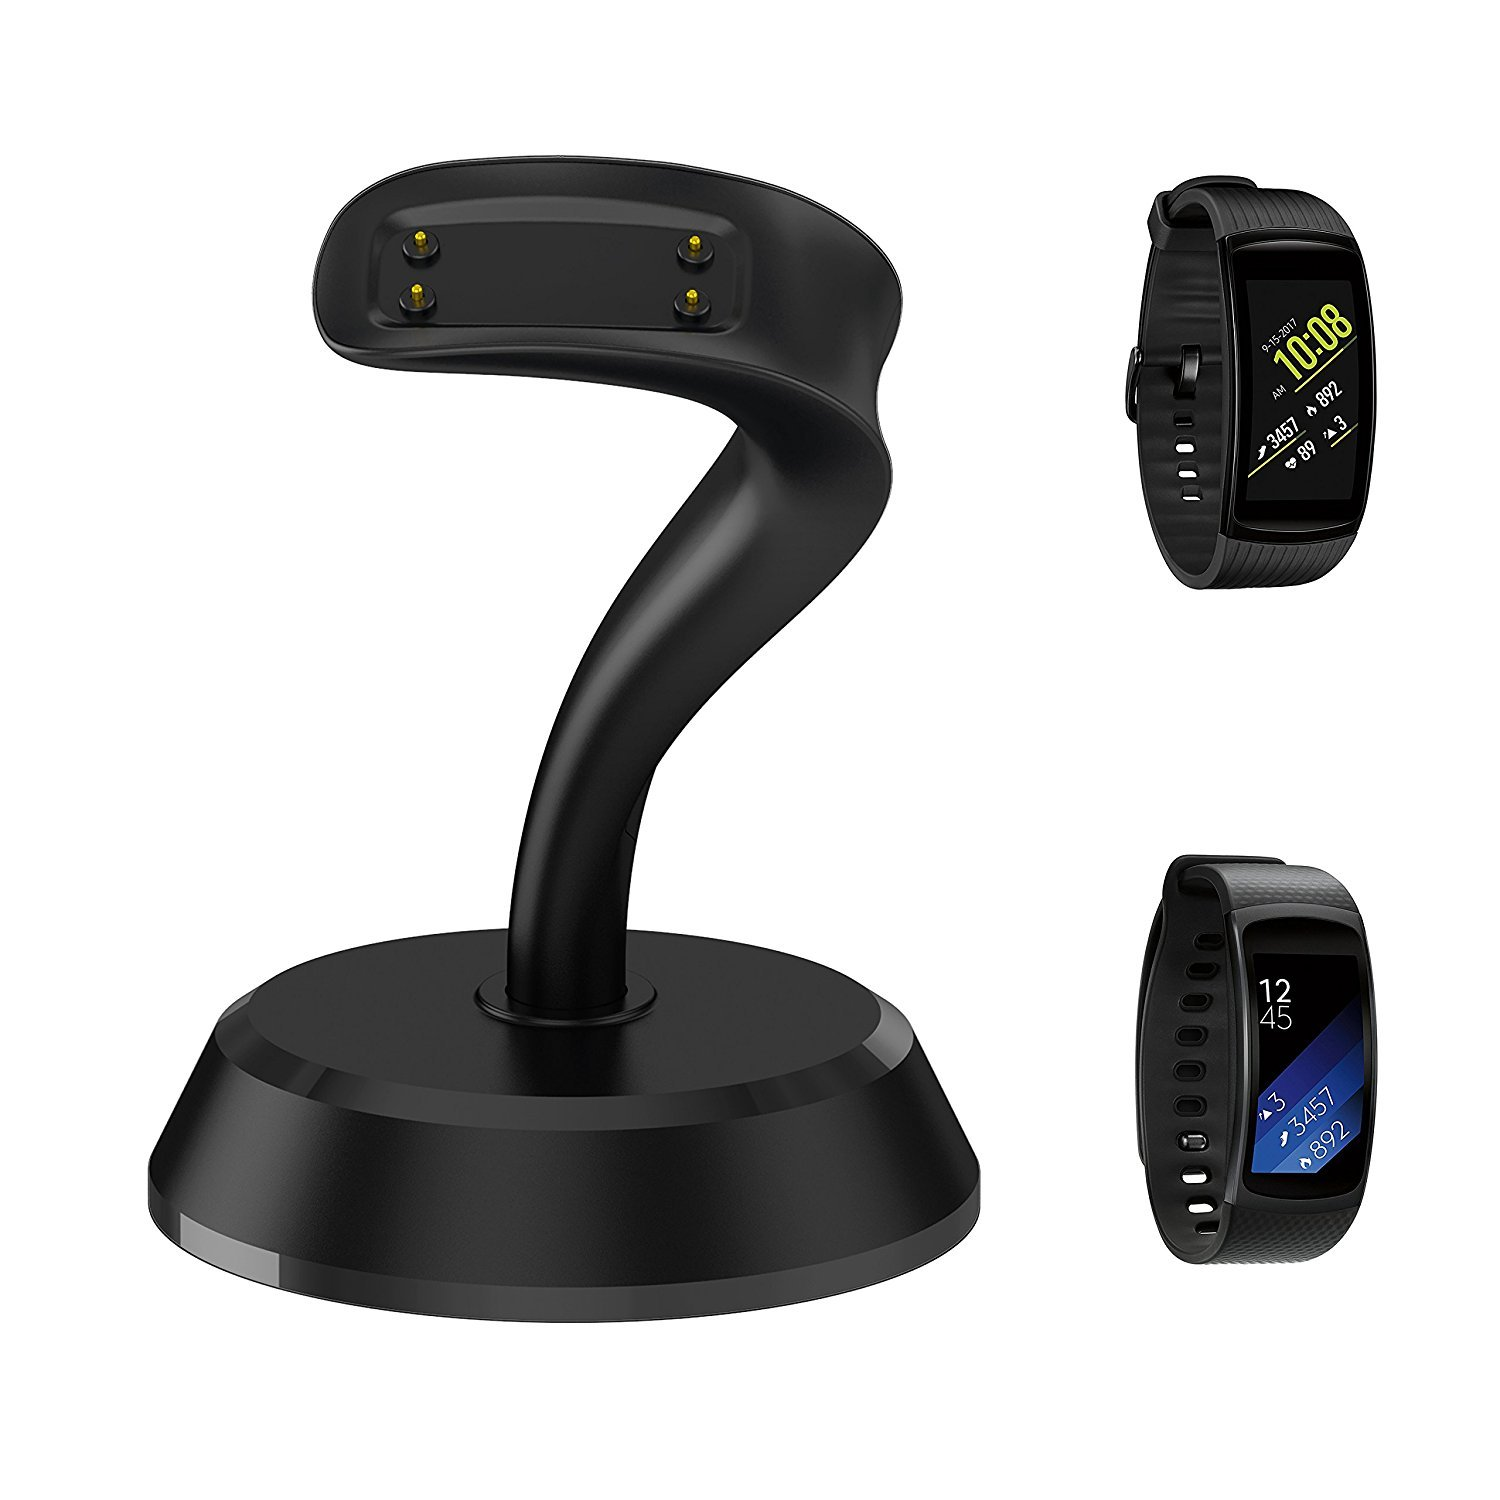 Fitian Gear Fit 2 Pro/Fit 2 Charger,Portable Gear Fit 2 Charger Stand Replacement Charging Docking Station Cradle for Samsung Galaxy Gear Fit2 Pro SM-R365 / Gear Fit 2 SM-R360 Smart Watch